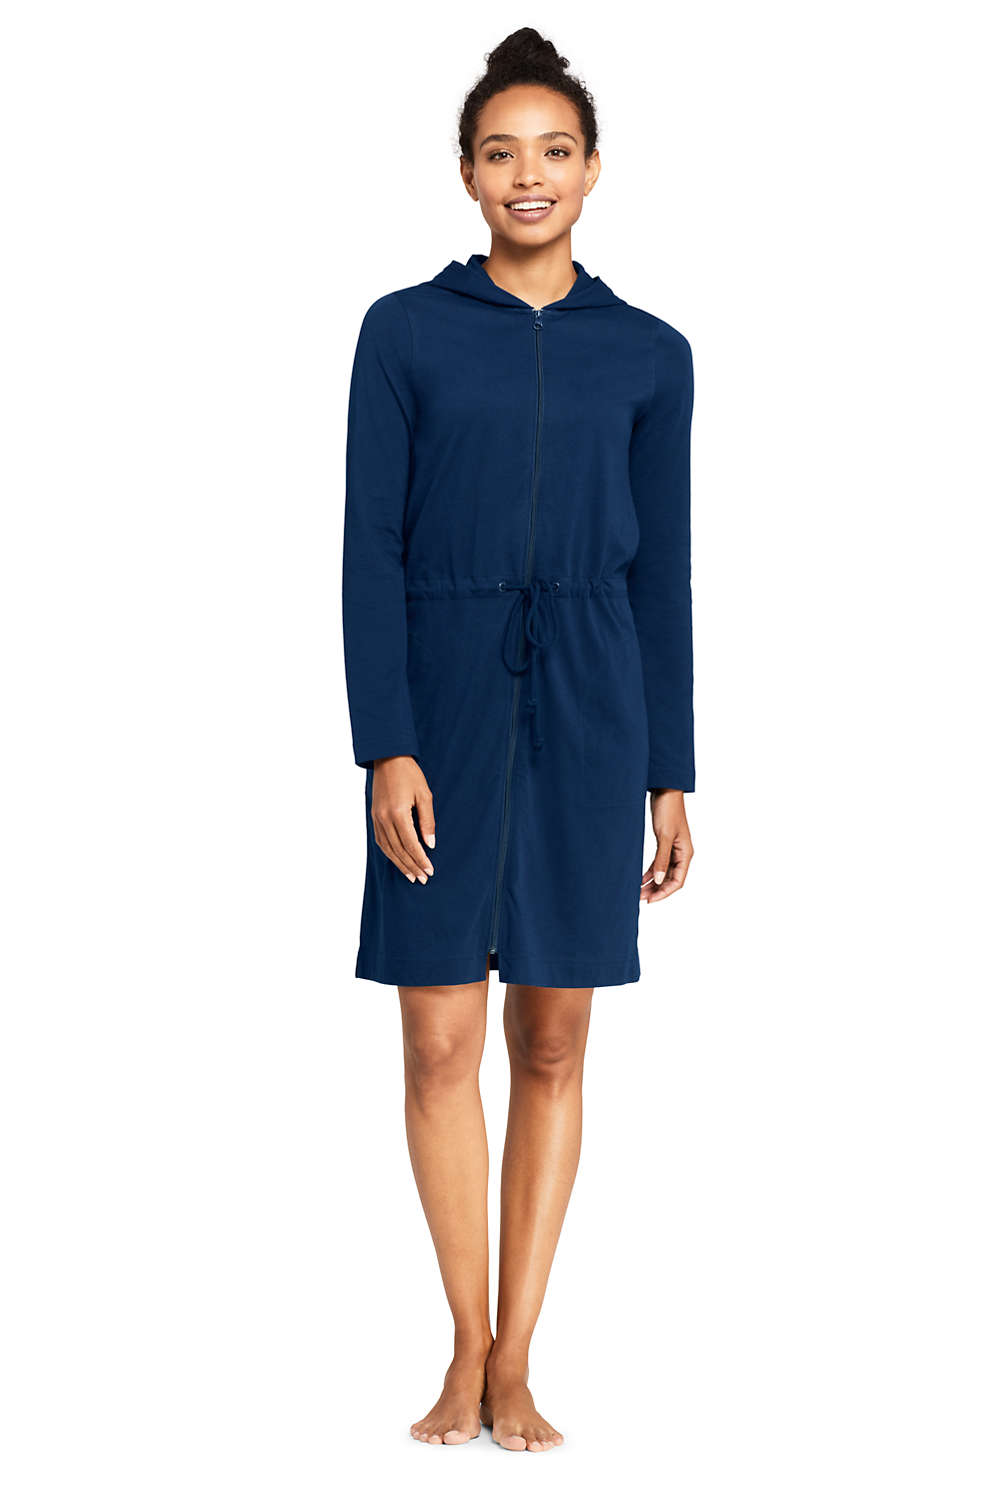 7a0c674243 Women s Cotton Jersey Hooded Full Zip Swim Cover-up from Lands  End